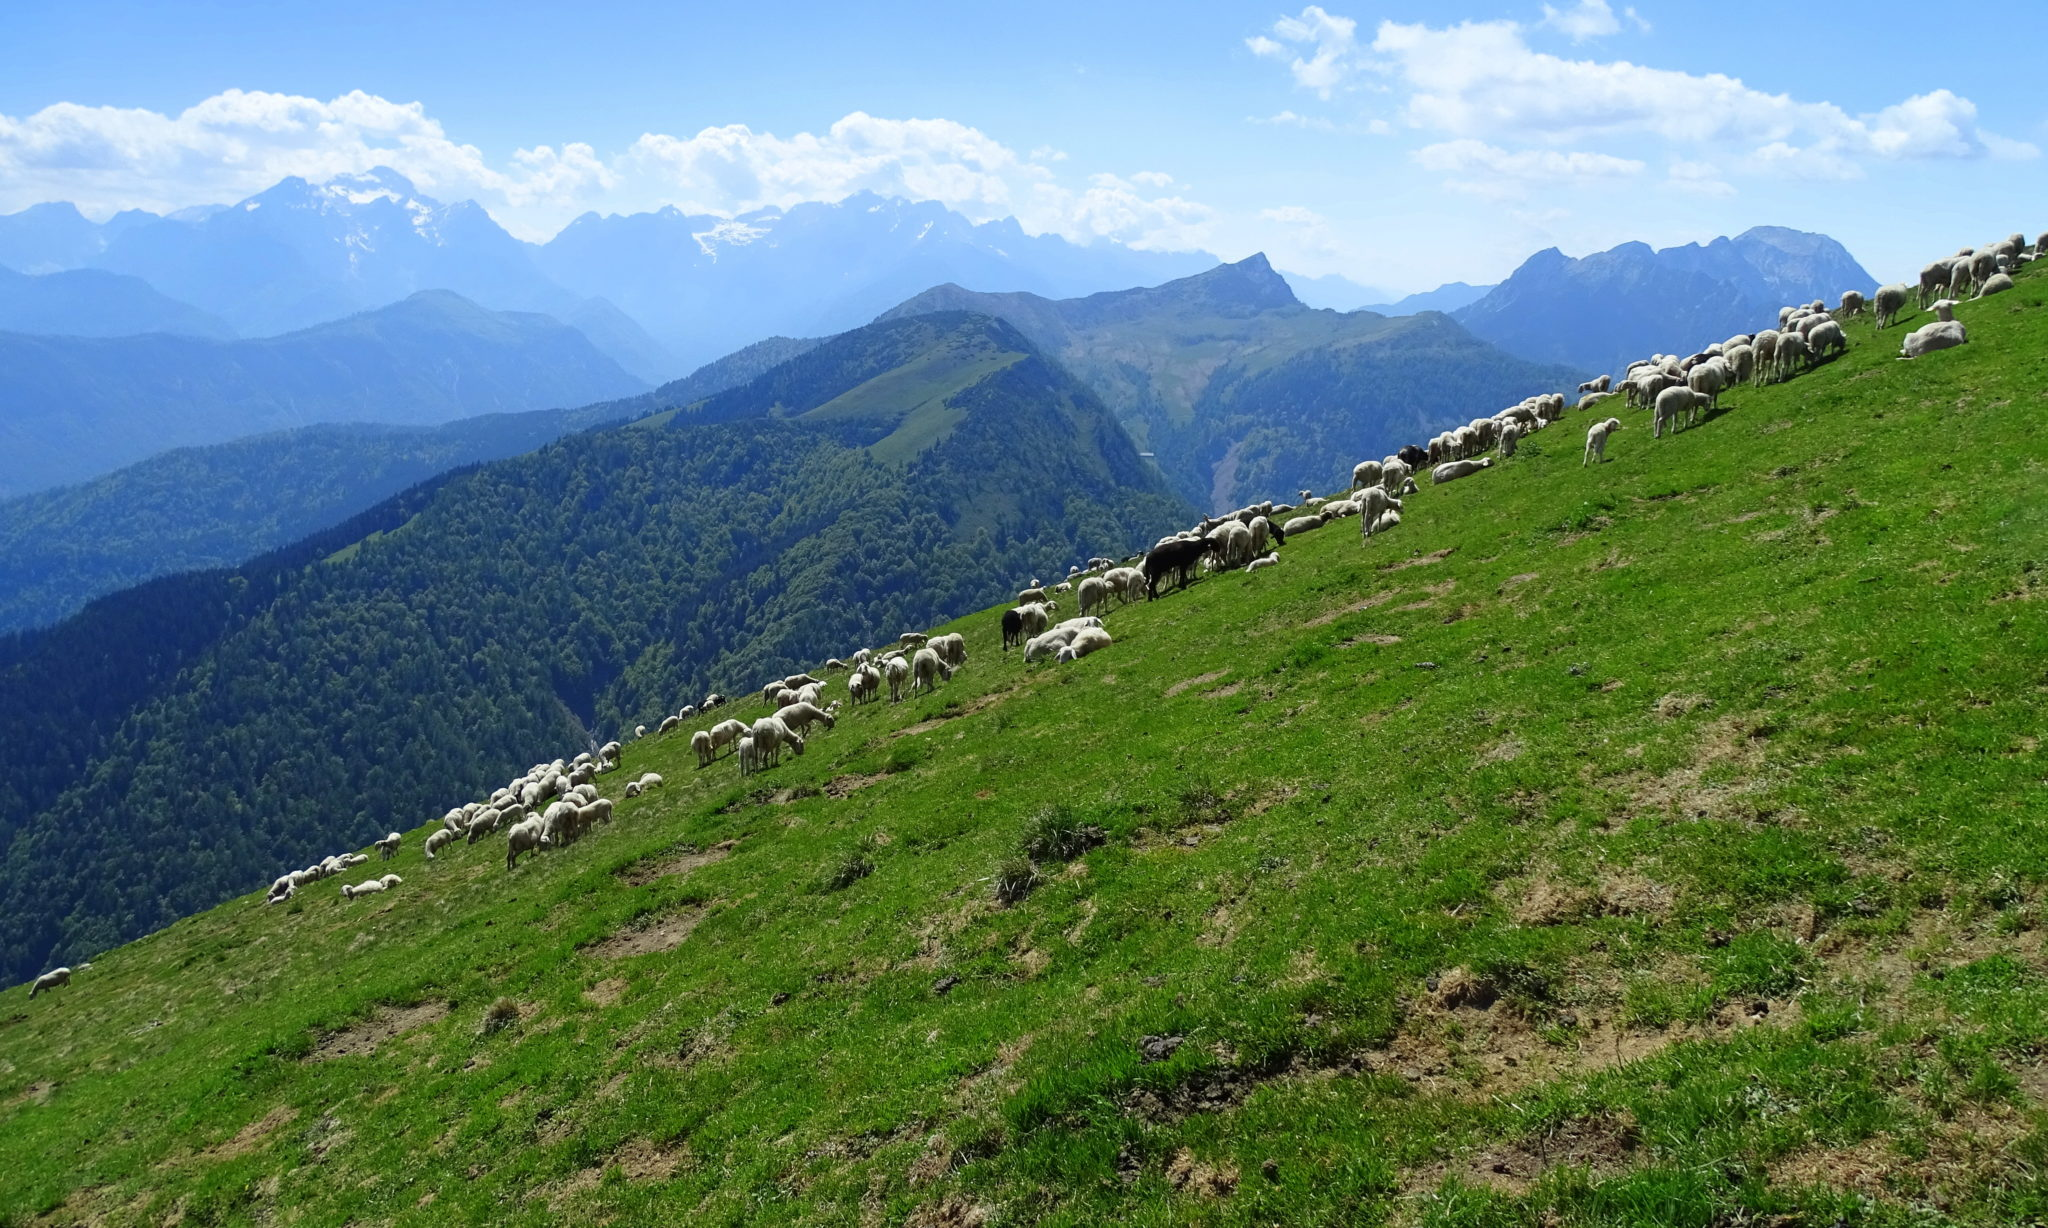 Carefree sheep grazing on soft grass in the mountains; Golica, Slovenia